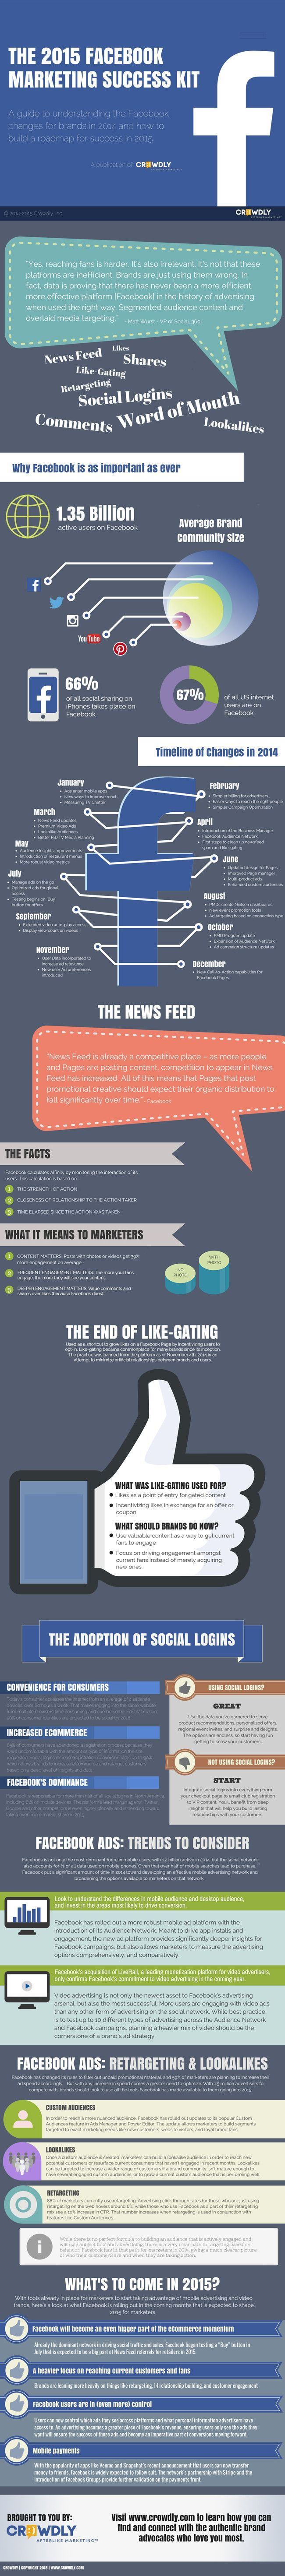 The 2015 Facebook Marketing Success Kit [Infographic]